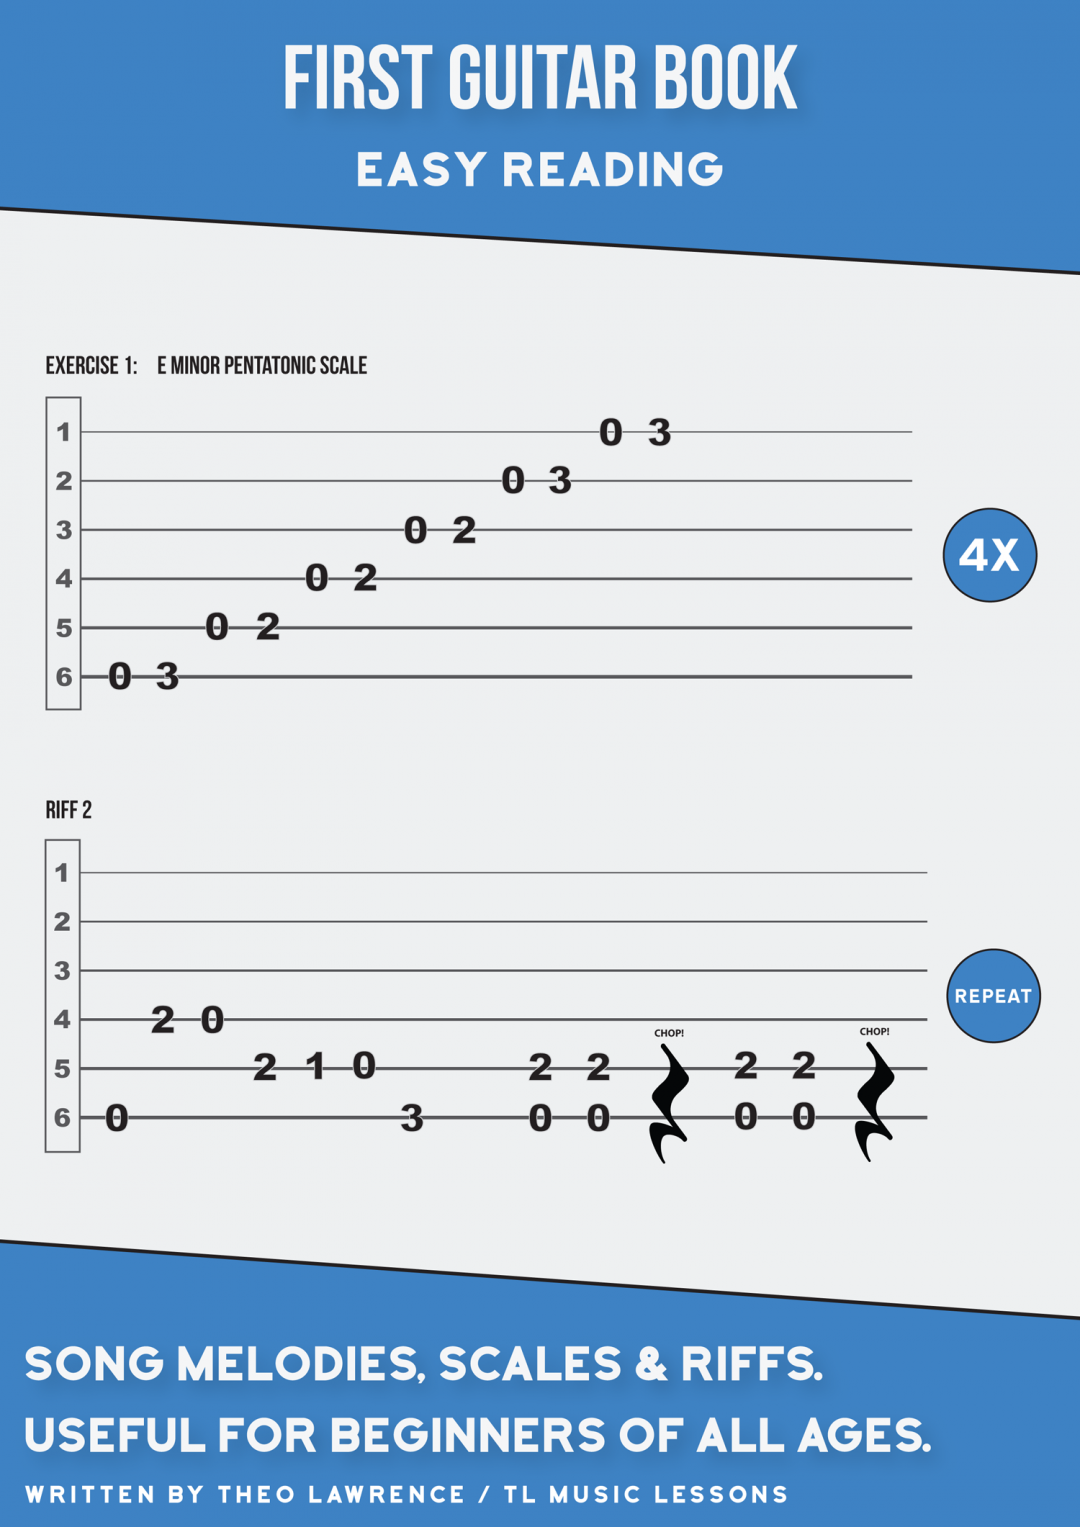 (PREMIUM) – First Guitar Book – Easy Reading Scales, Riffs & Melodies